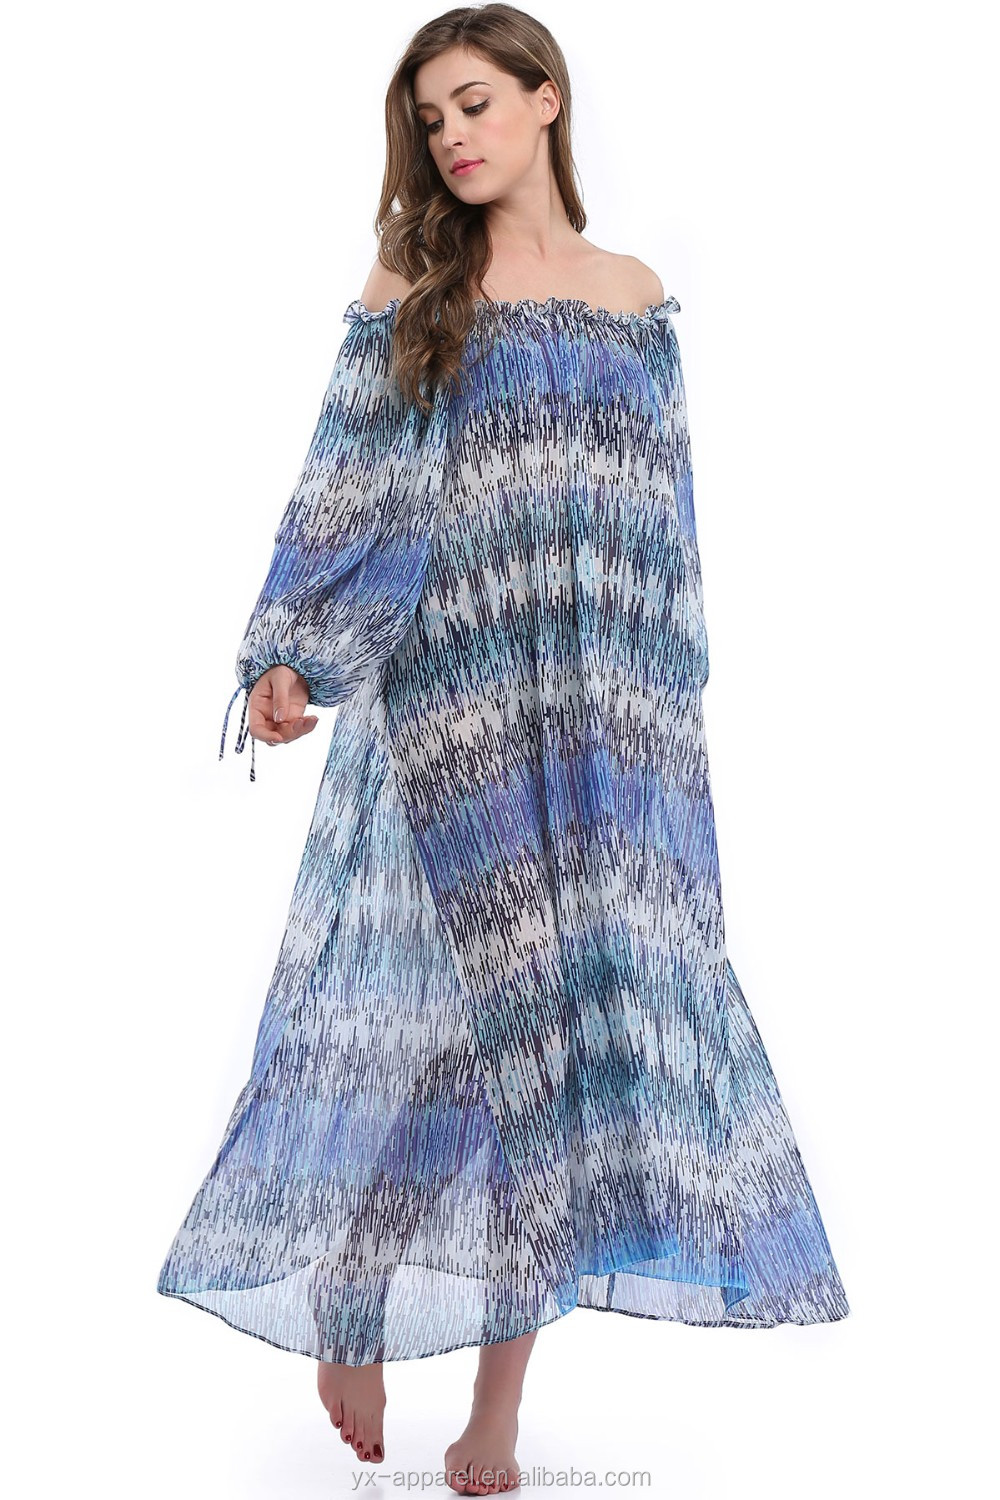 Adult women maxi long rainbow handmade crochet knit beach dress with tassel